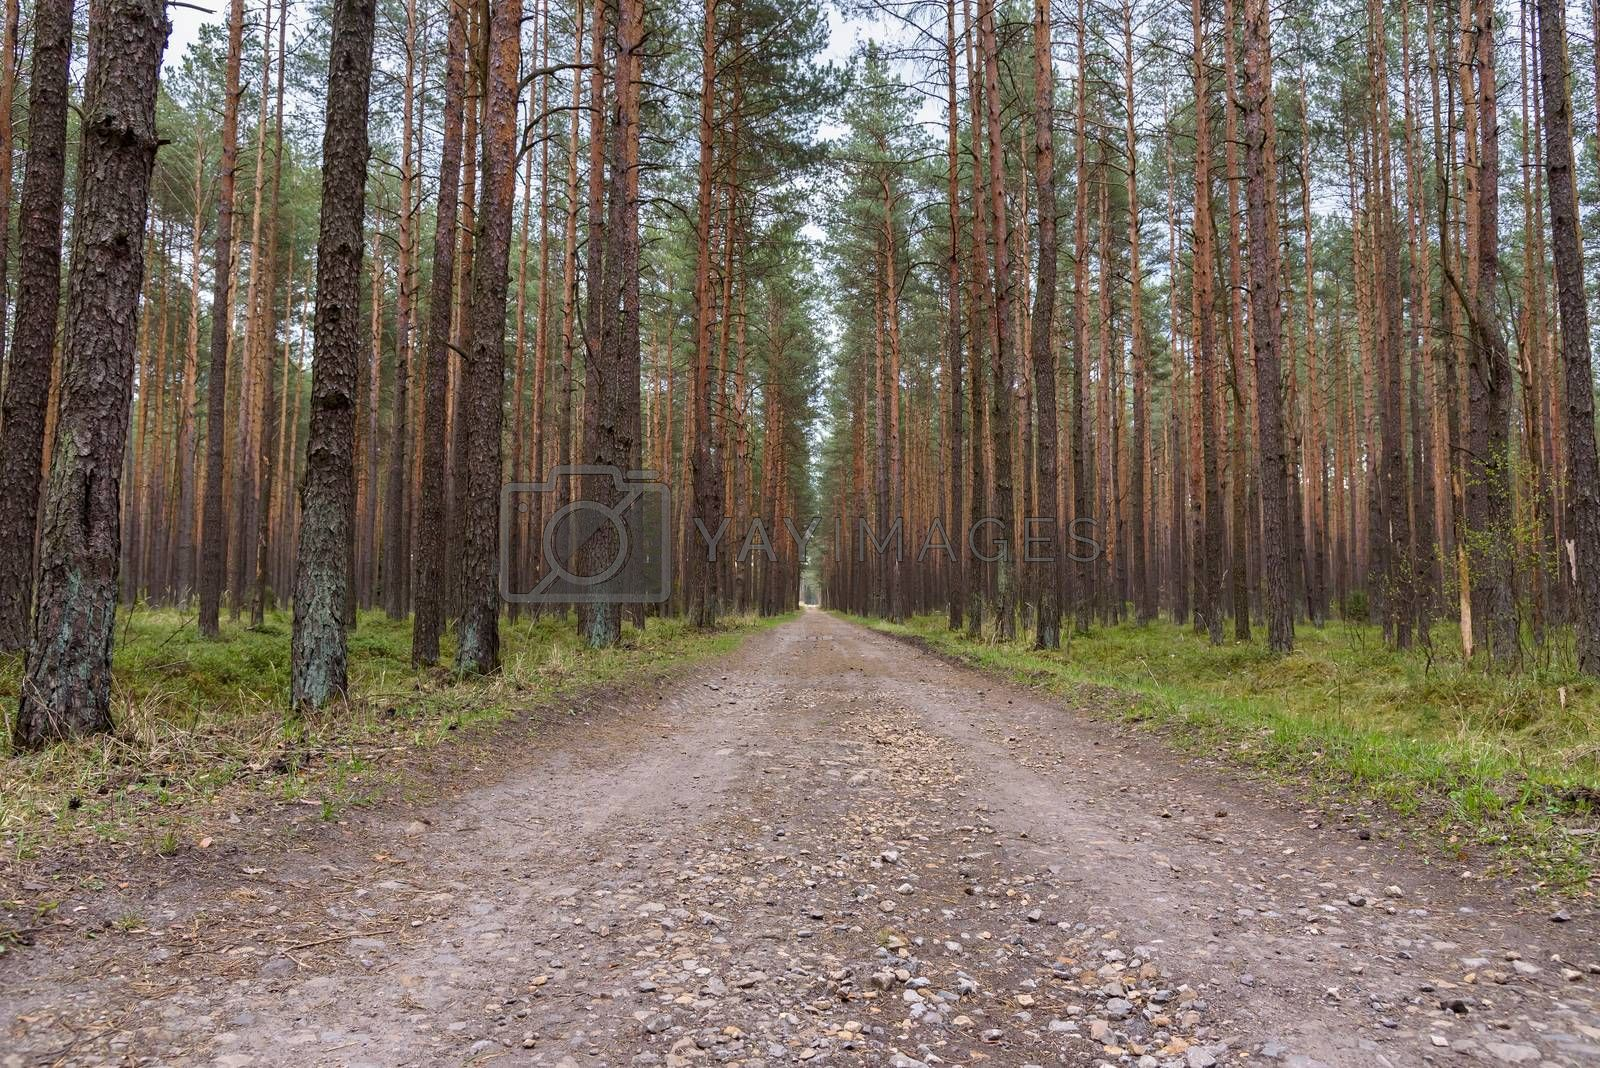 Straight dirt road through pine forest in Poland